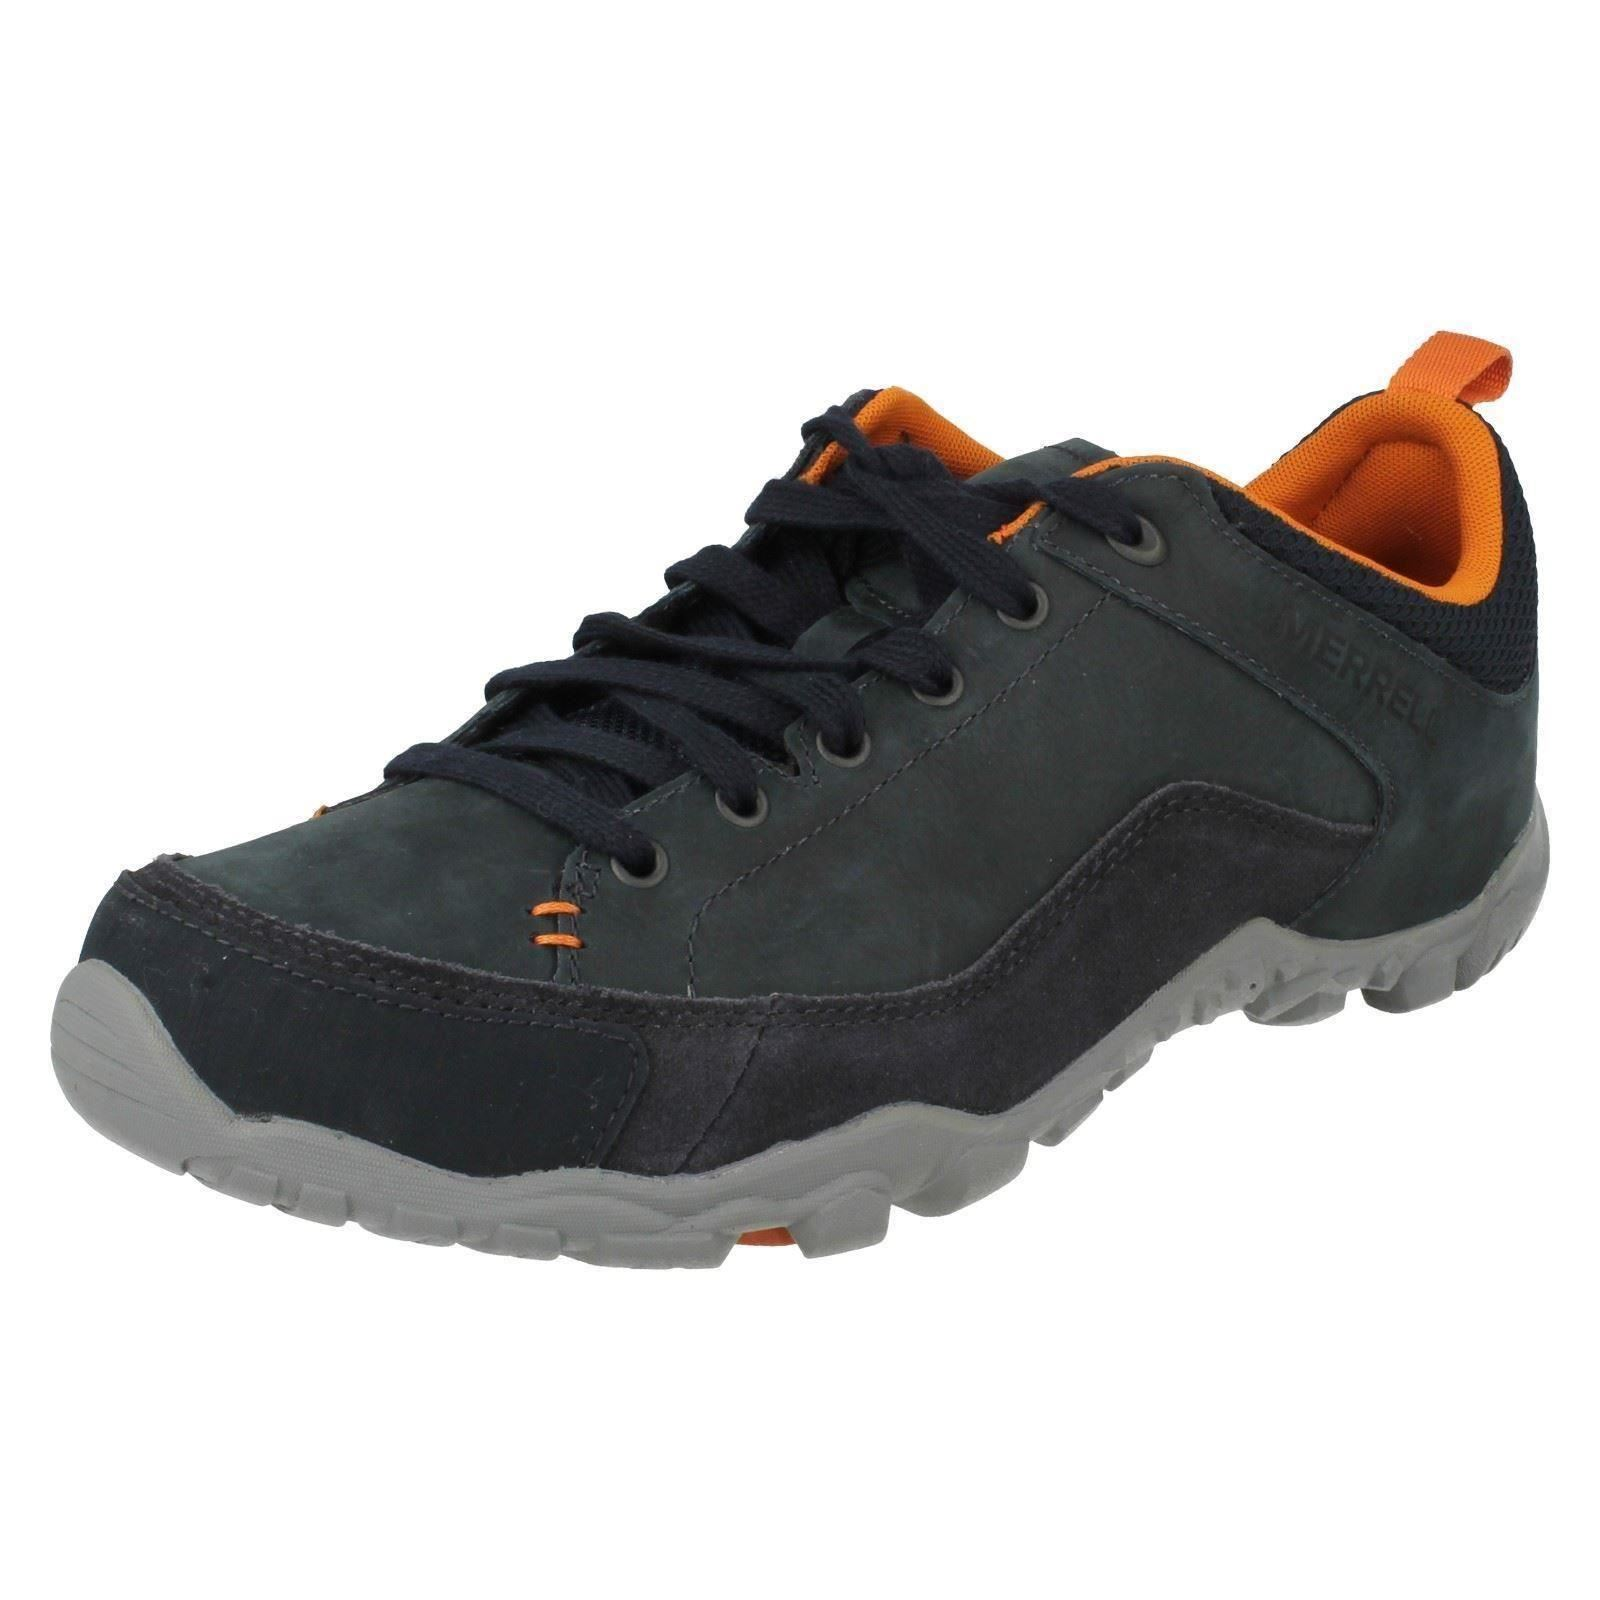 Uomo Merrell Rounded Toe Lace Schuhes Up Leder Casual Walking Schuhes Lace Telluride Lace dece02